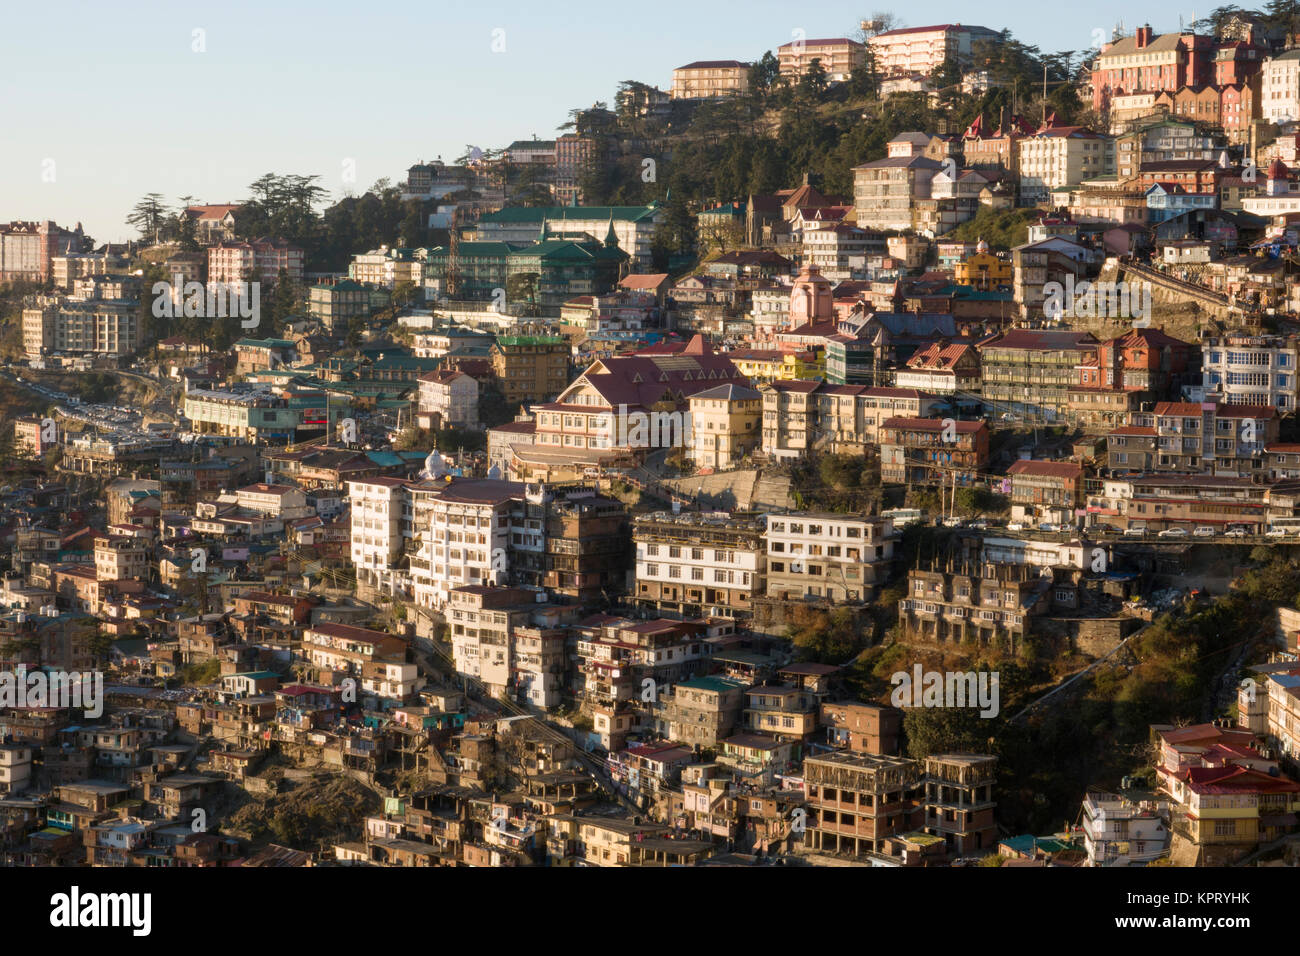 High angle view of Shimla, capital of Himachal Pradesh, India - Stock Image